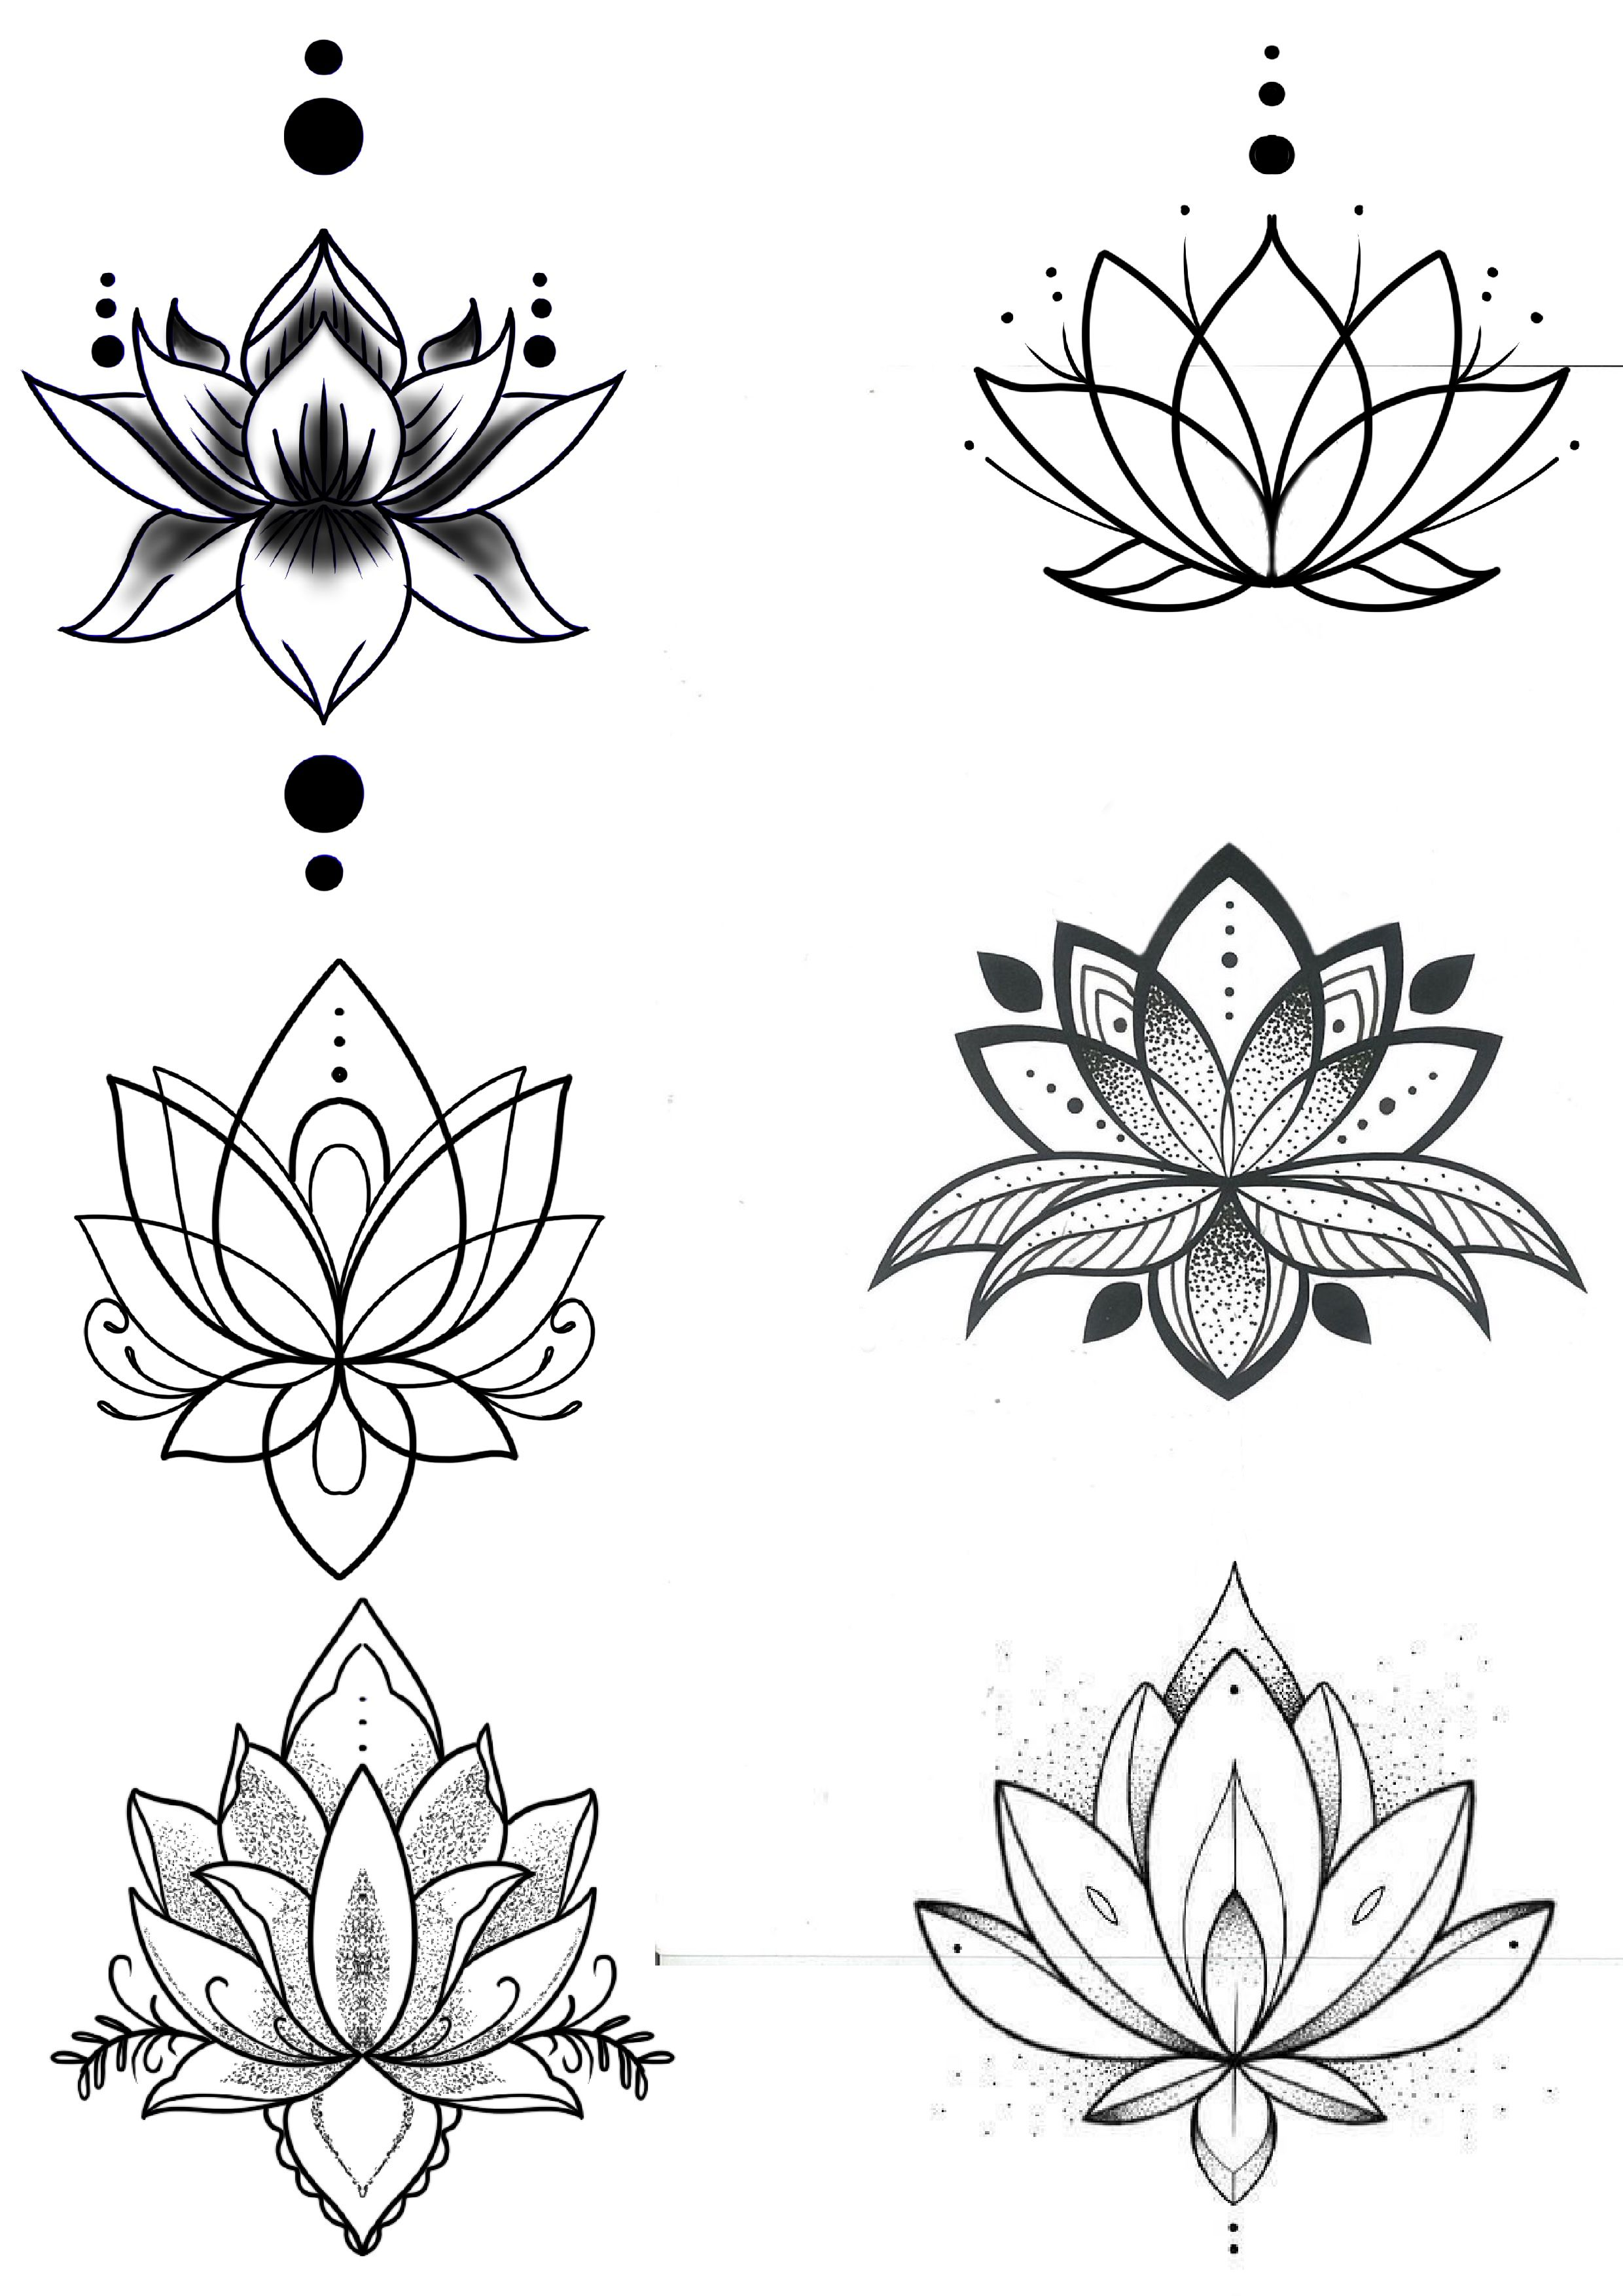 Pin By Winnie Victor On For The Future Lotus Tattoo Design Small Lotus Tattoo Flower Tattoo Designs